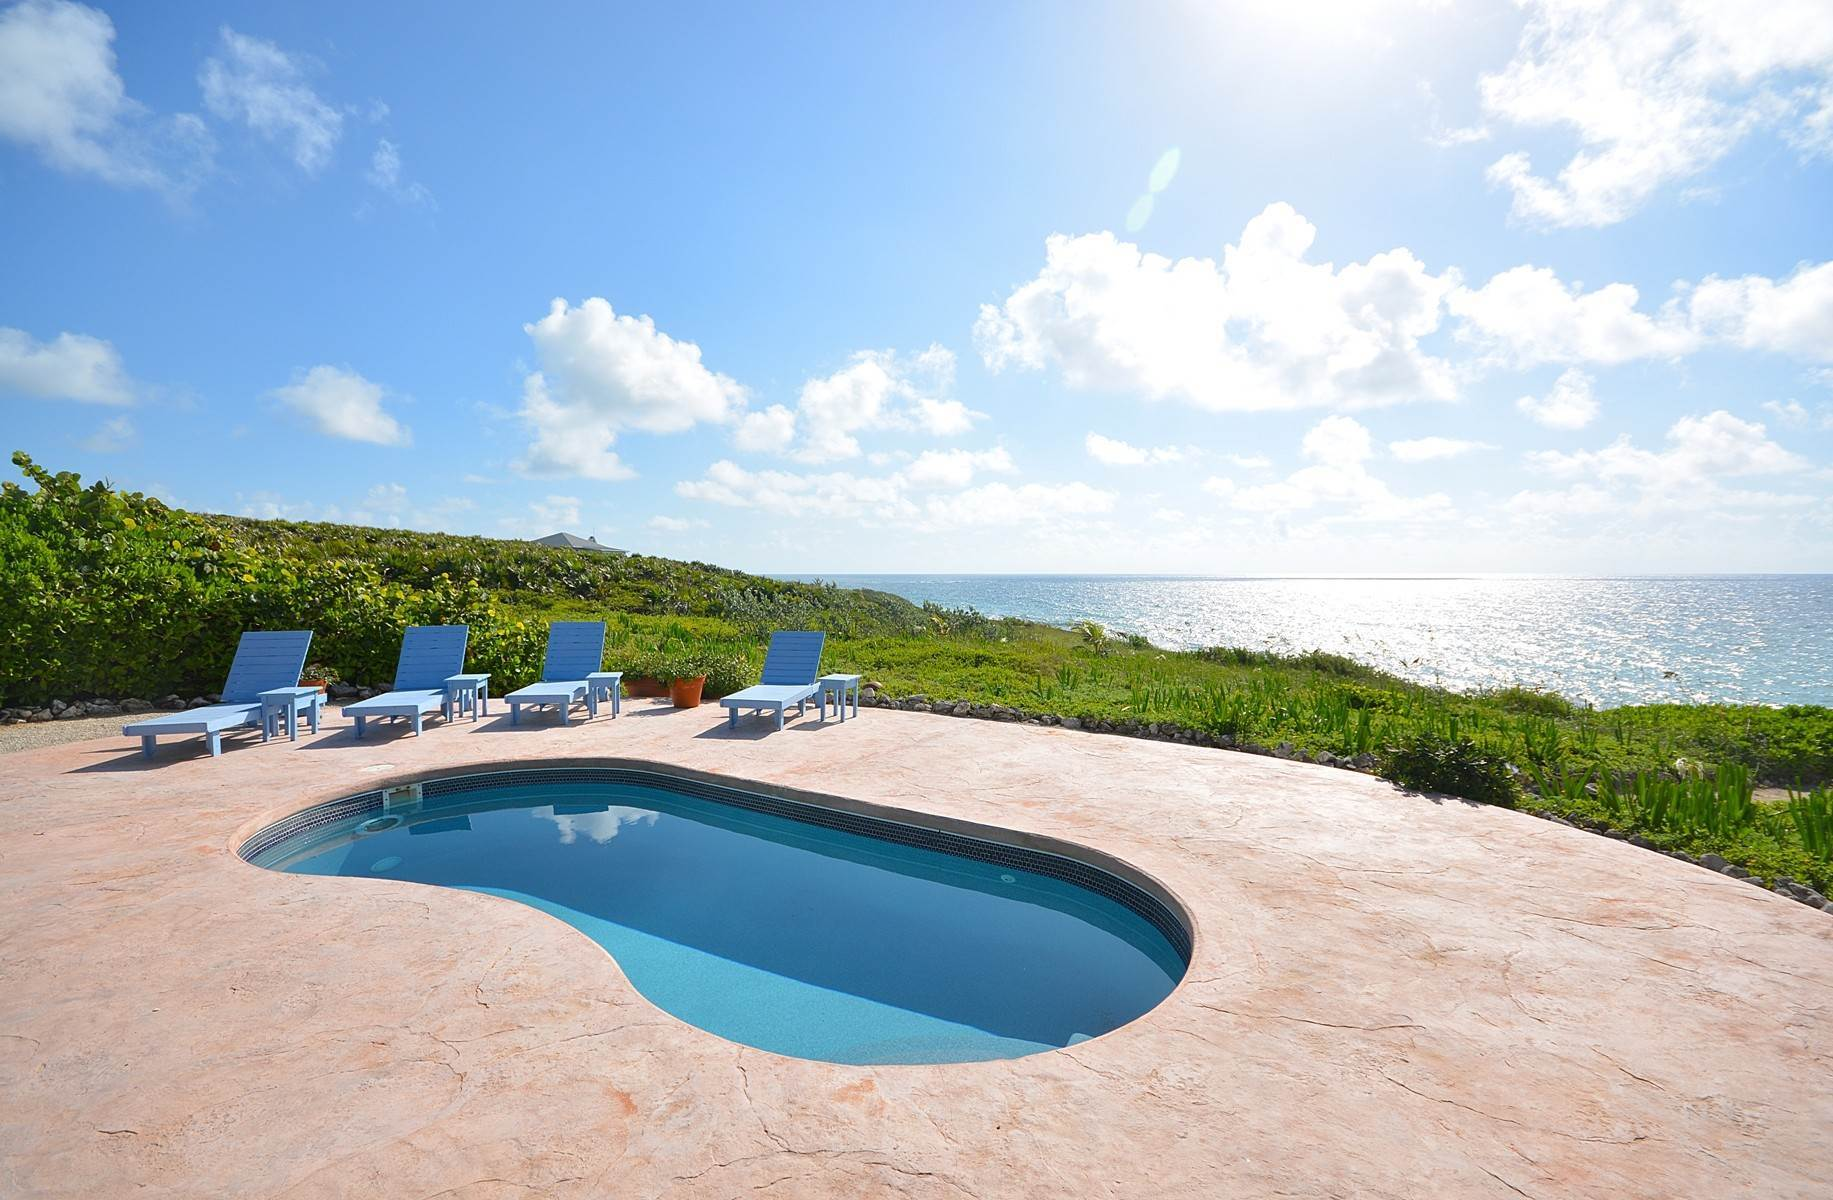 3. Single Family Homes for Sale at Walking Stick, a 2.2.Acre Atlantic Estate at The Abaco Club on Winding Bay MLS-27717 Winding Bay, Abaco, Bahamas